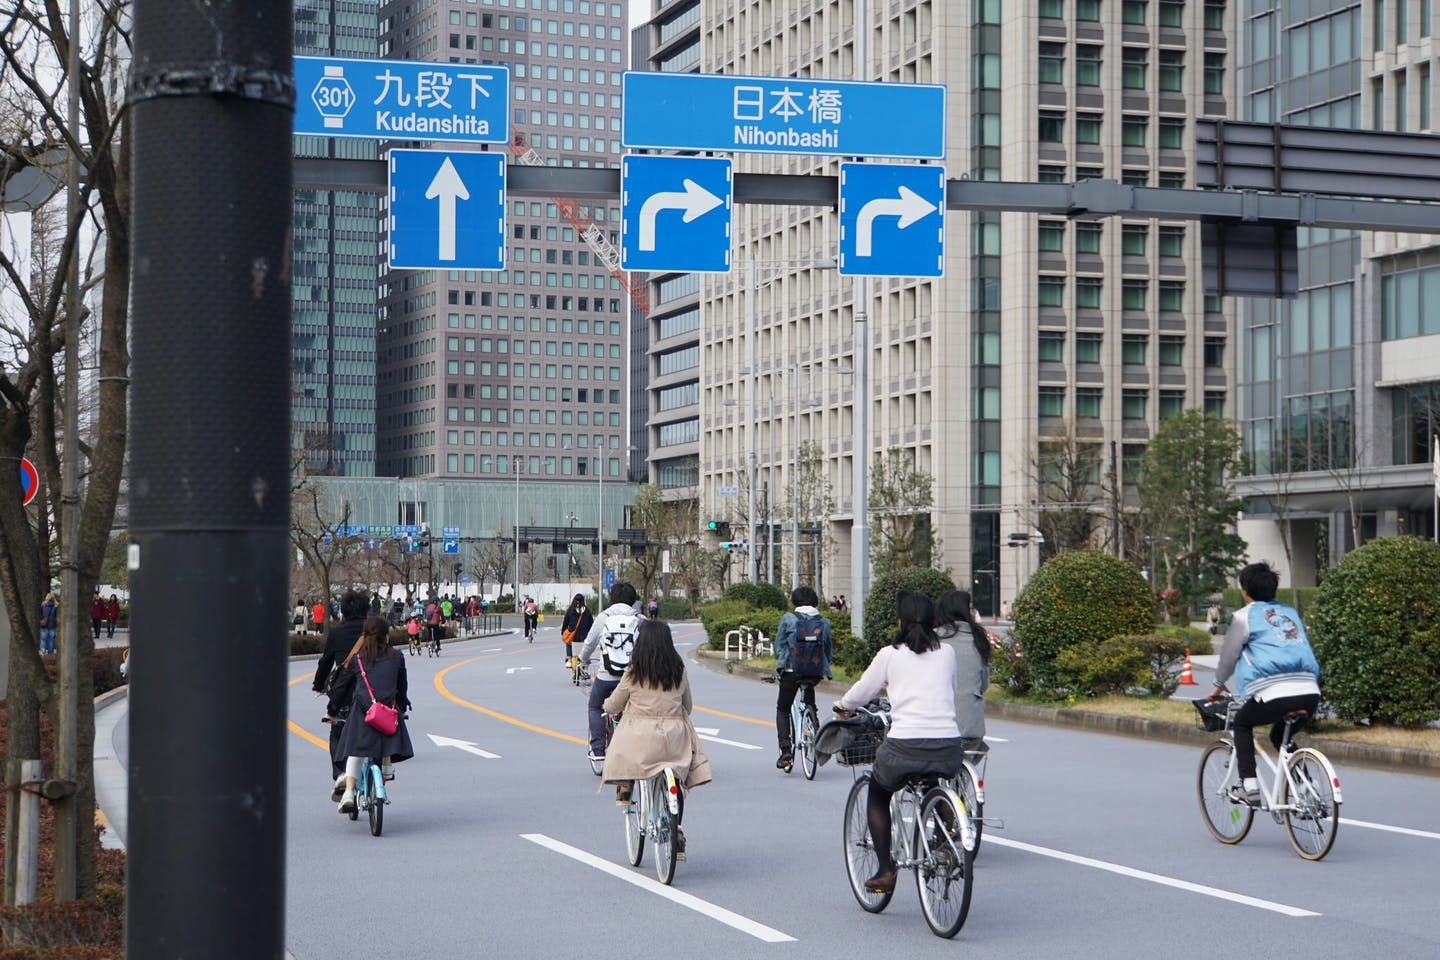 Cyclists on the road in Tokyo, Japan